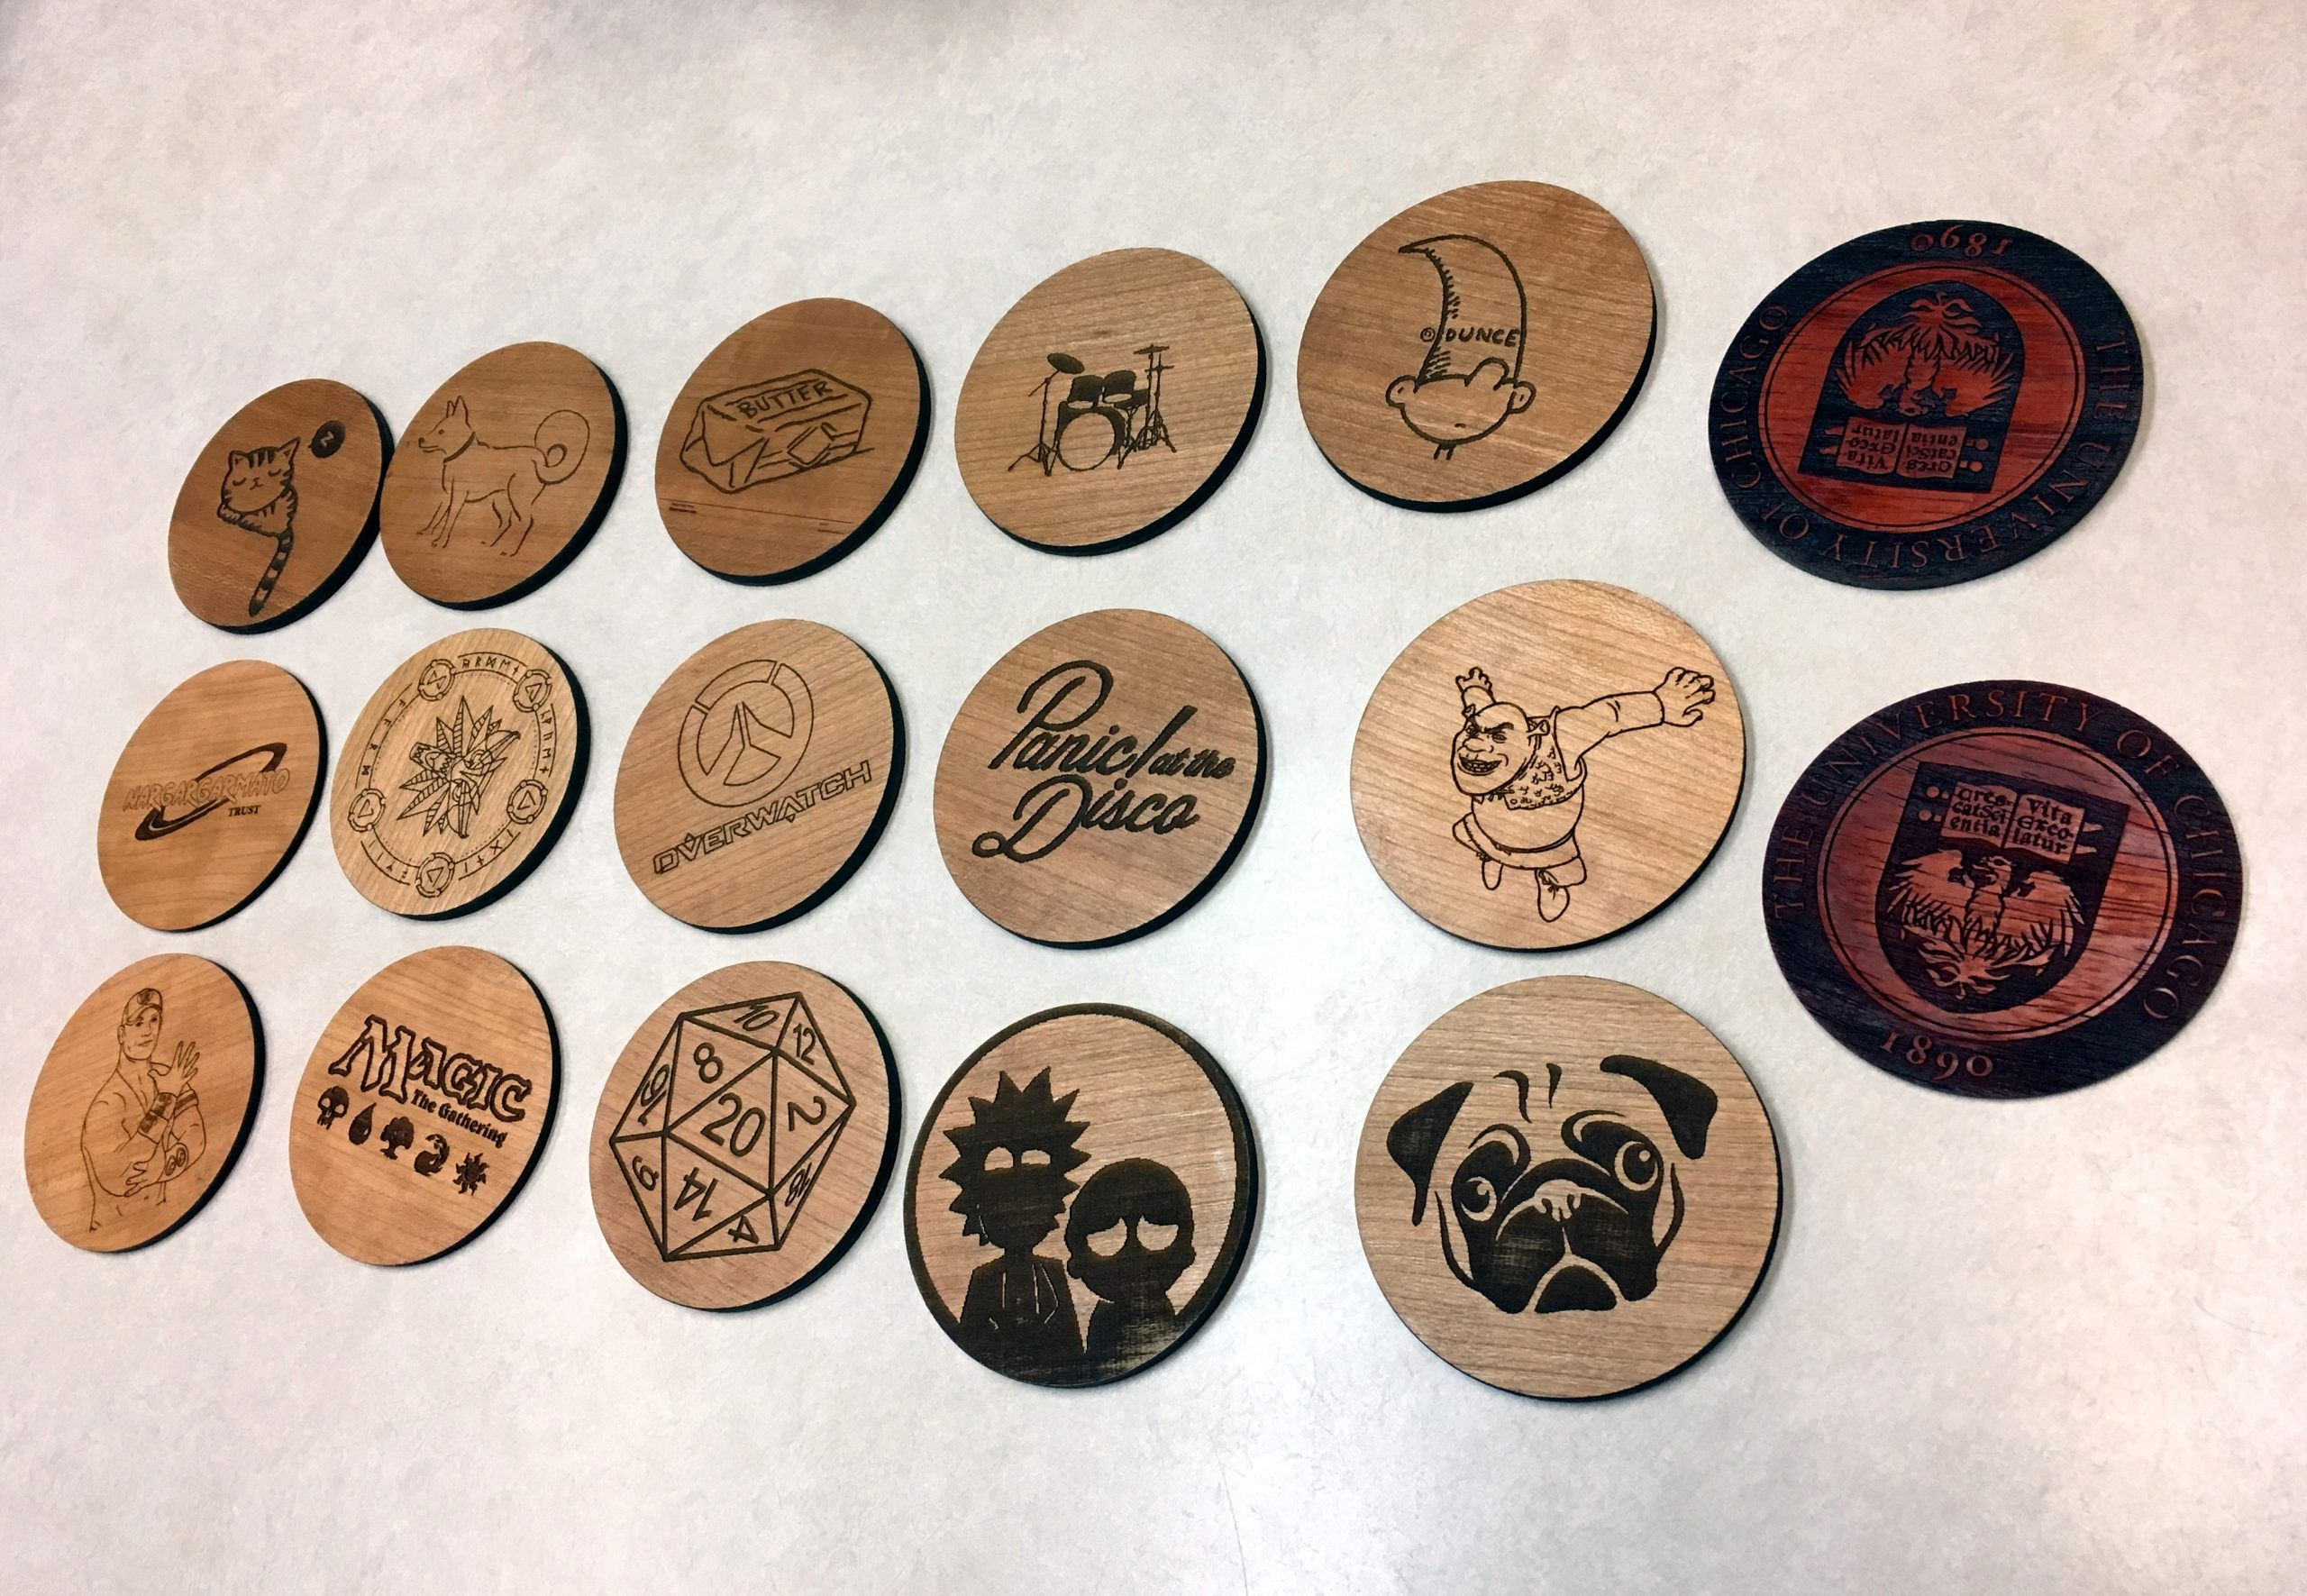 picture of wooden engraved coasters